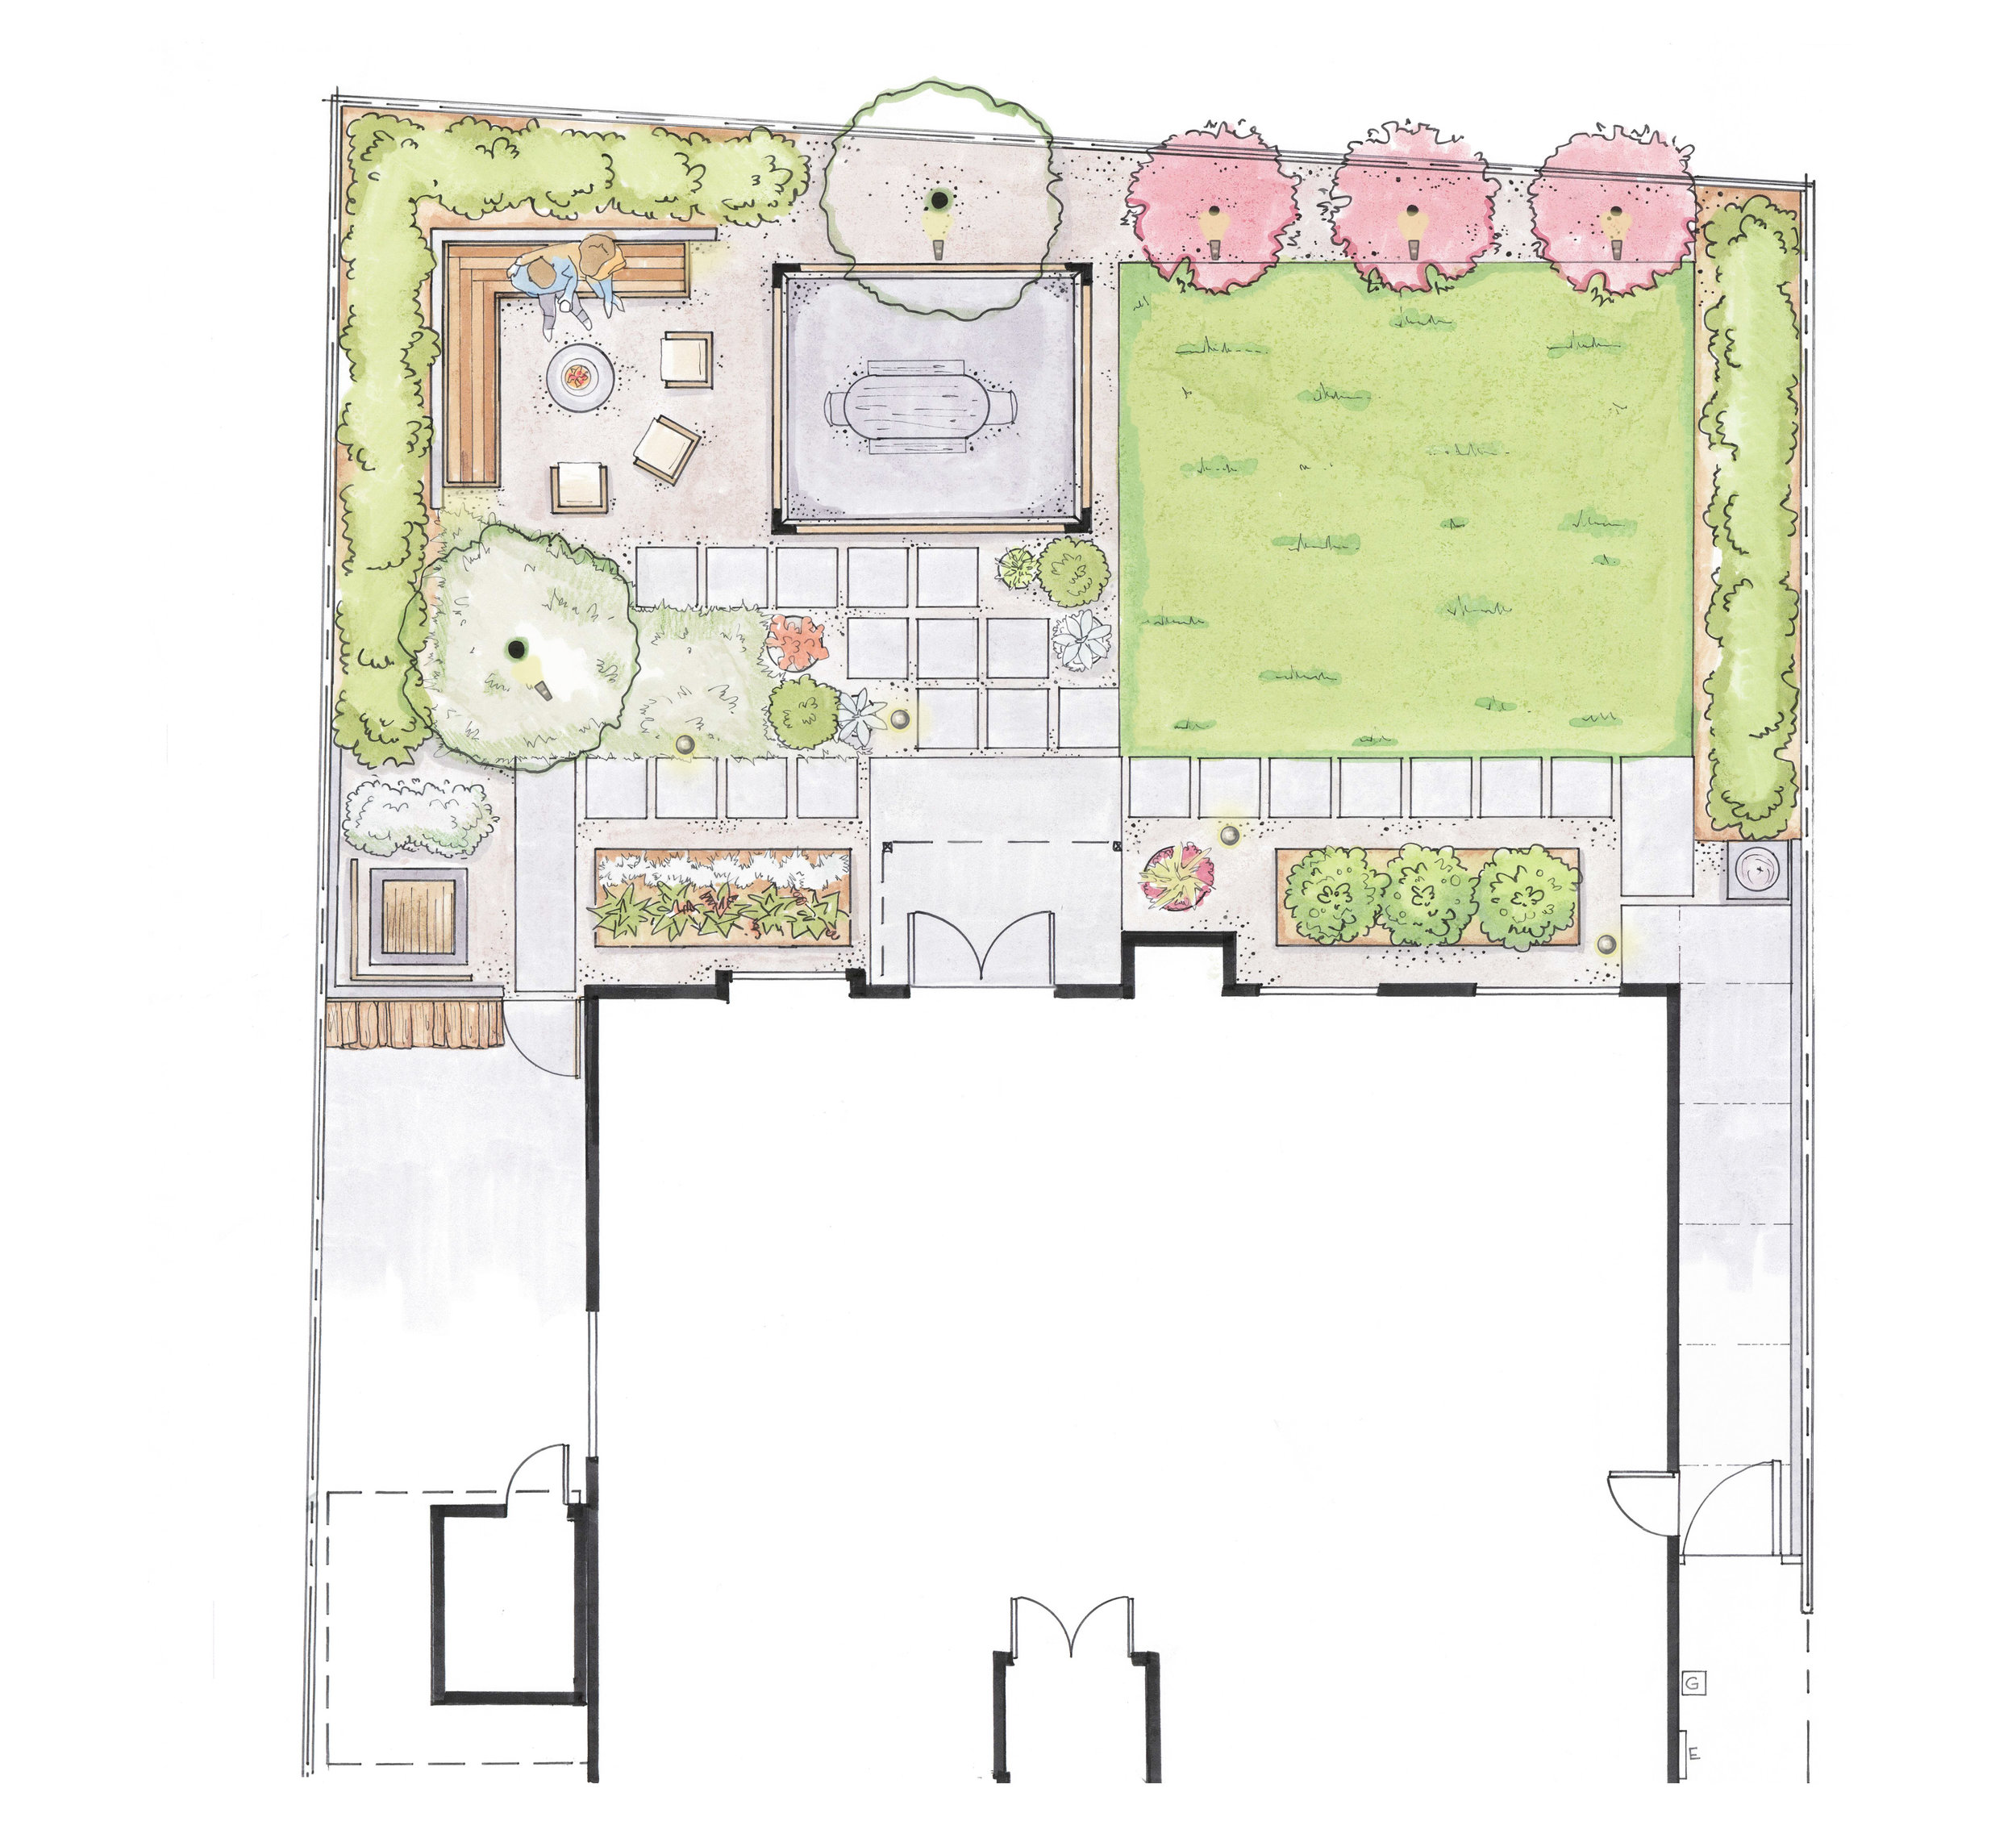 Our new project in Encinitas, California proposes an alfresco dining area not attached to the house and near a fire pit to encourage people out into the landscape.